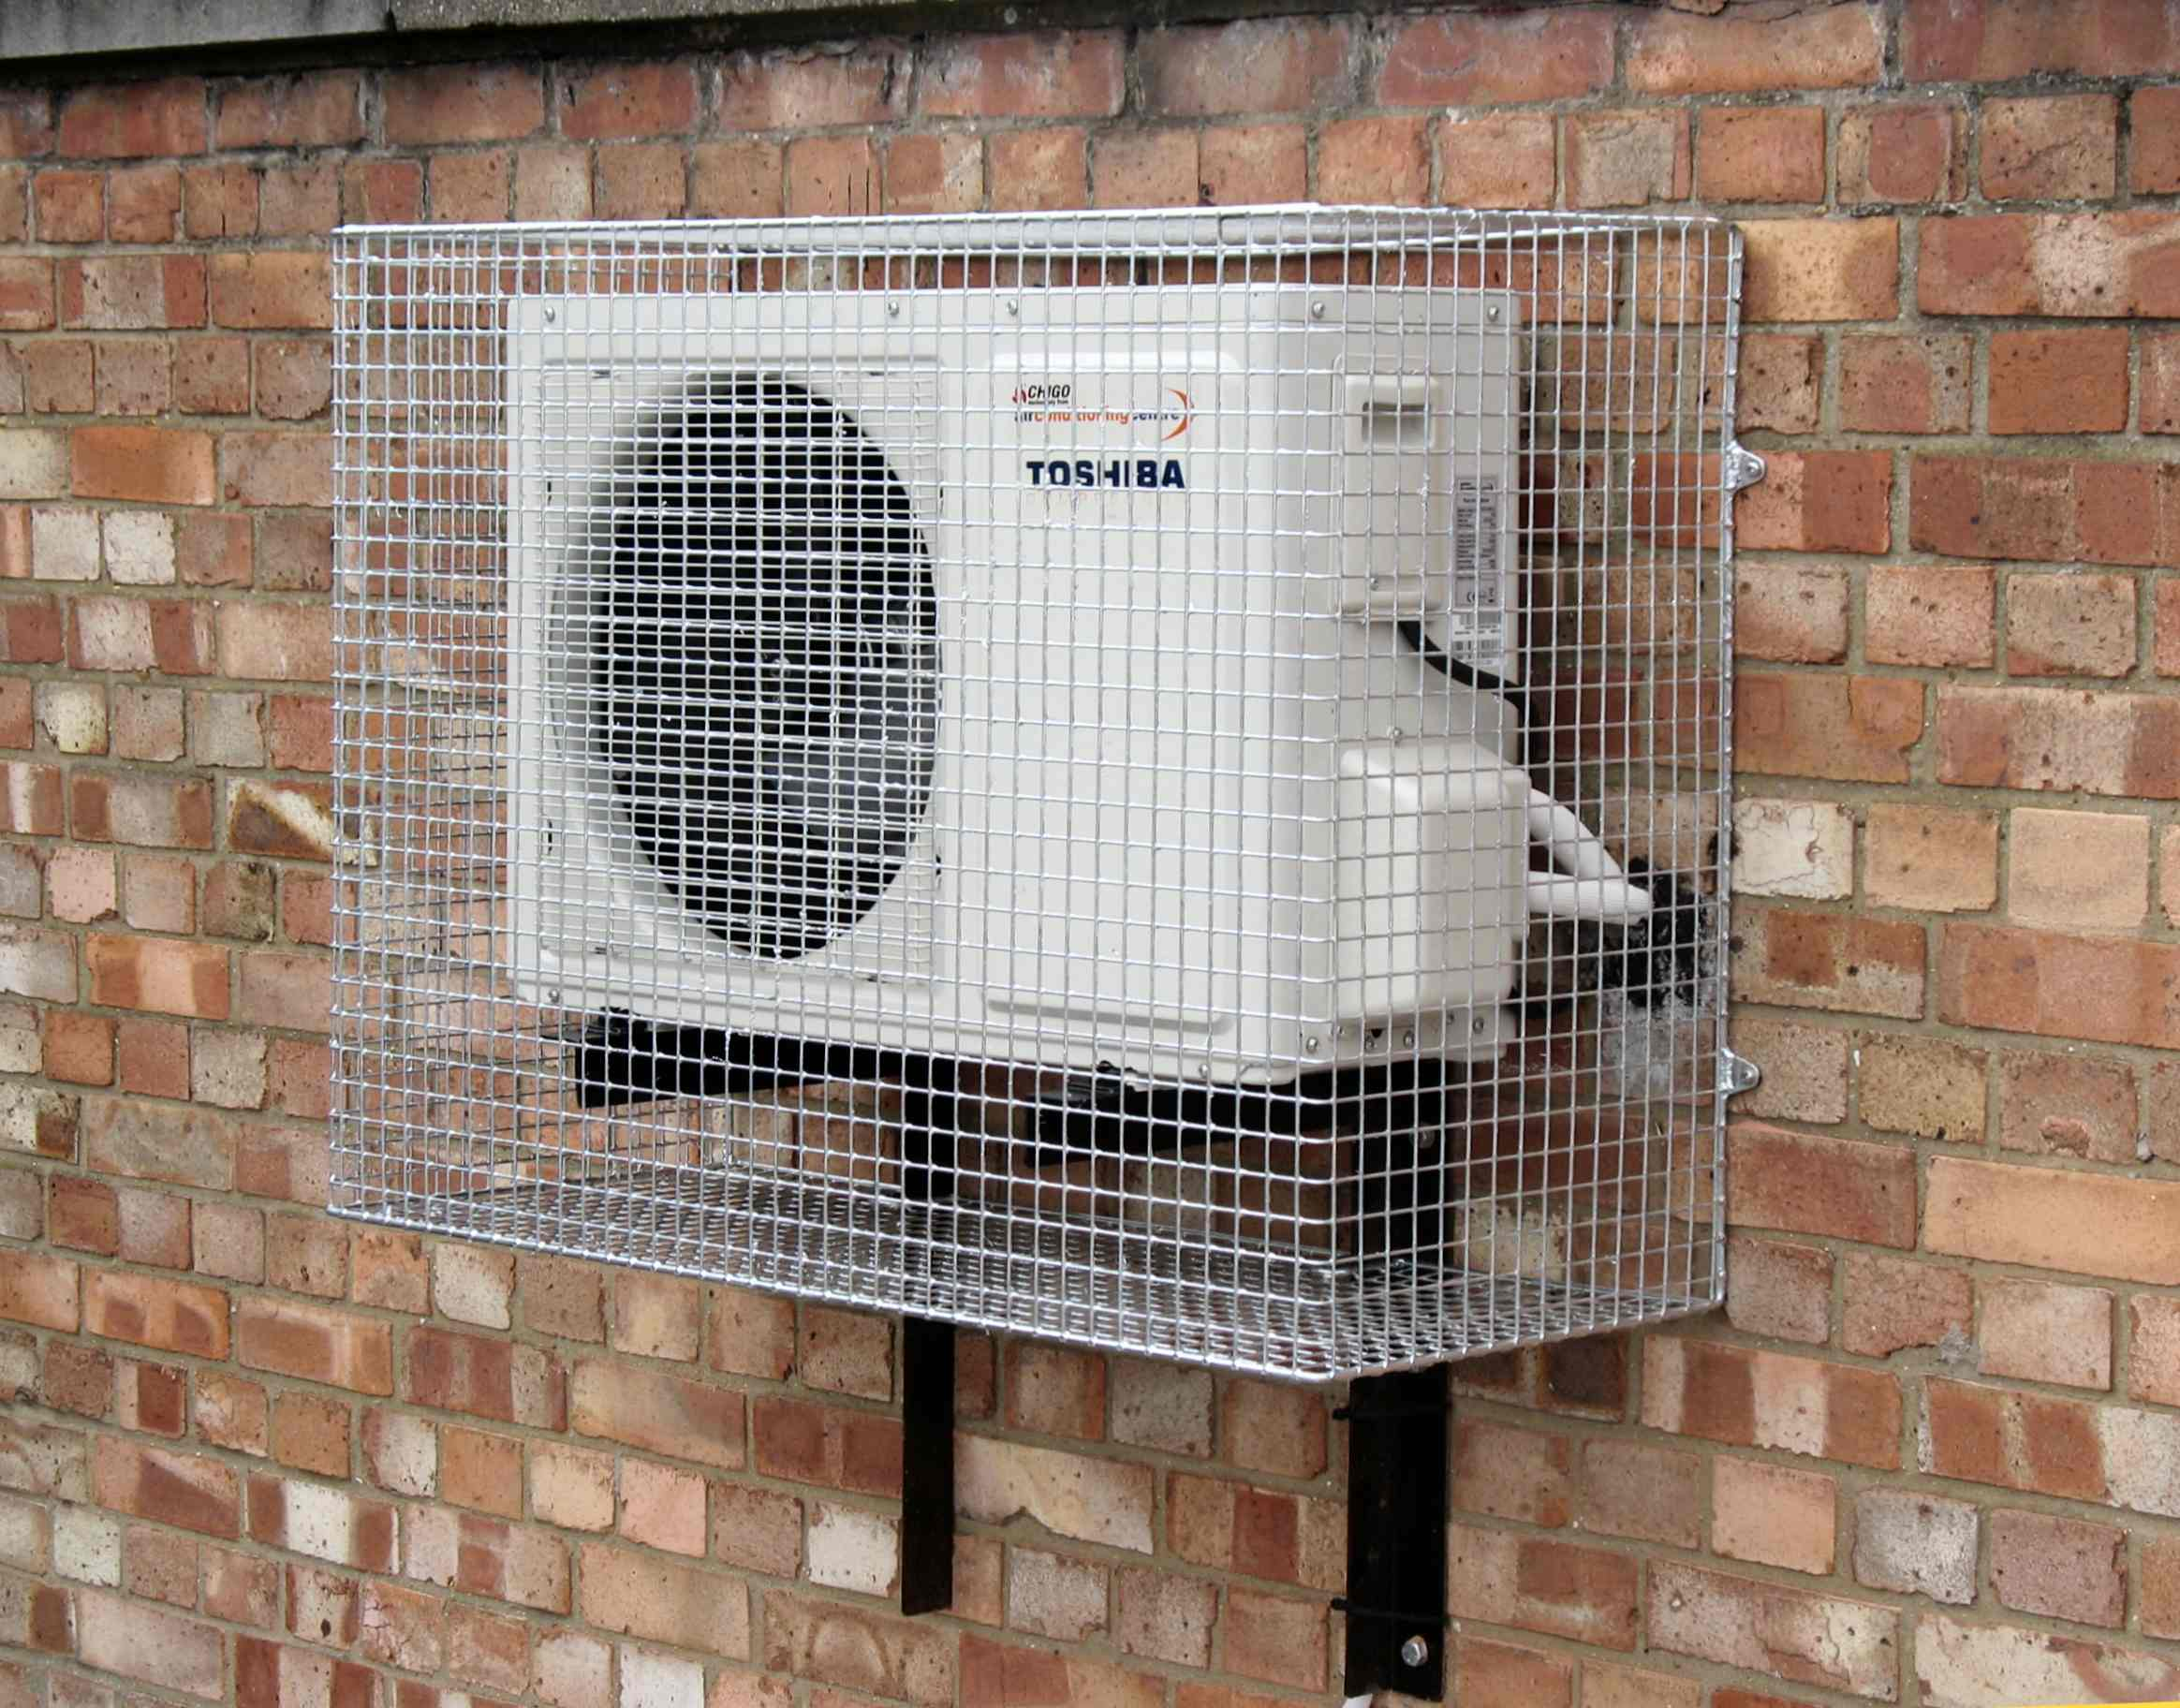 #6B4B3C Lightweight Air Conditioning Guard Security Cages Direct Recommended 2797 External Ac Unit pics with 2328x1824 px on helpvideos.info - Air Conditioners, Air Coolers and more